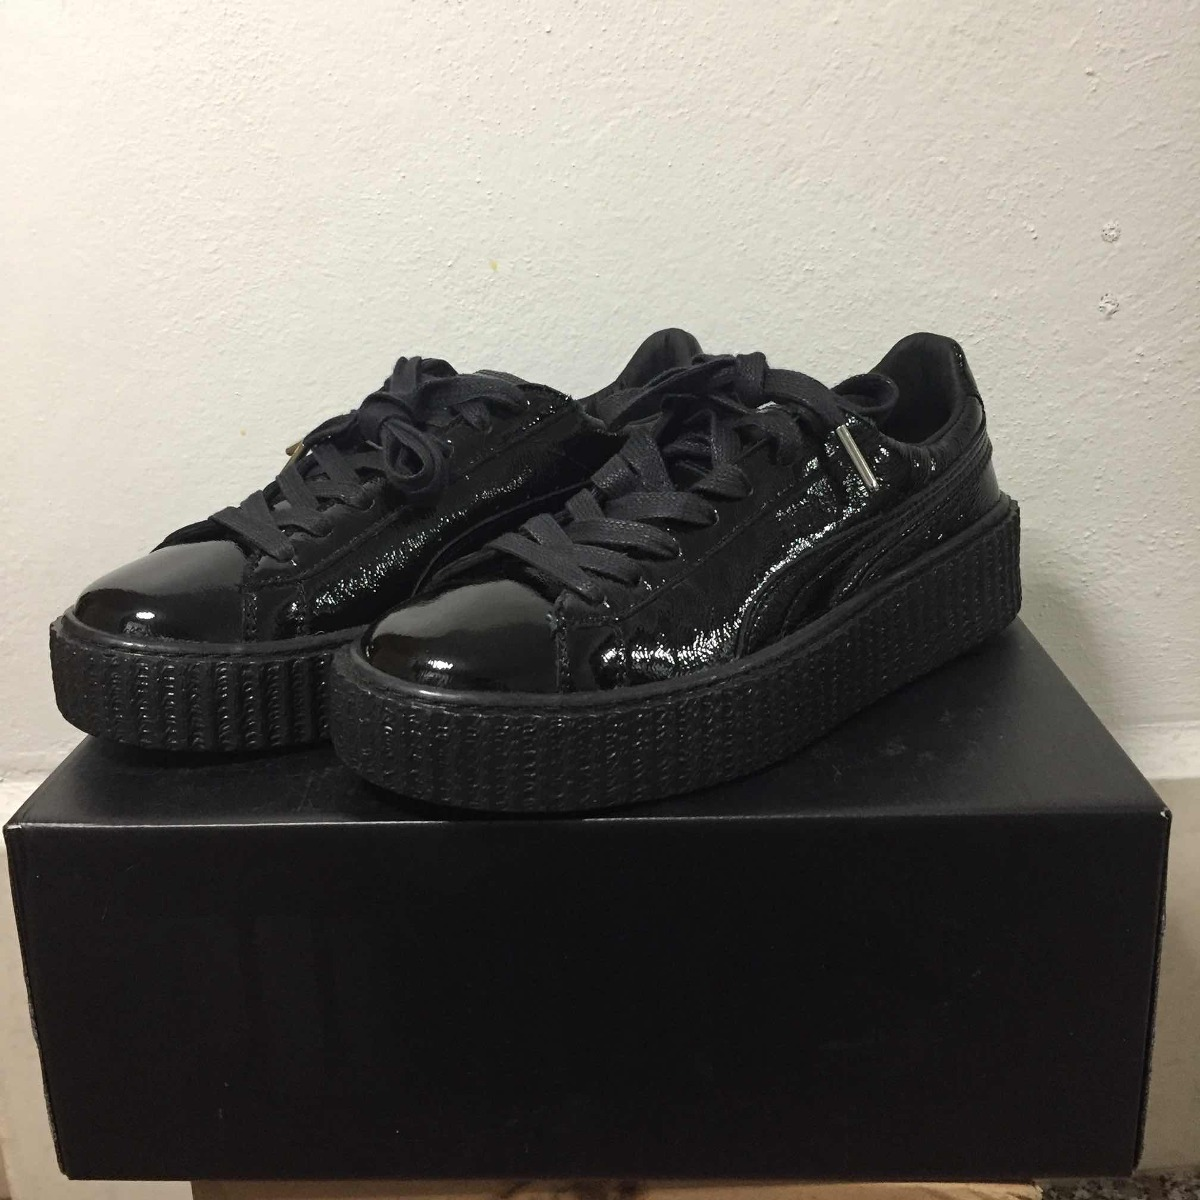 the best attitude a9de5 629a5 Tenis Puma Fenty Rihanna Creepers Cracked Leather Originales